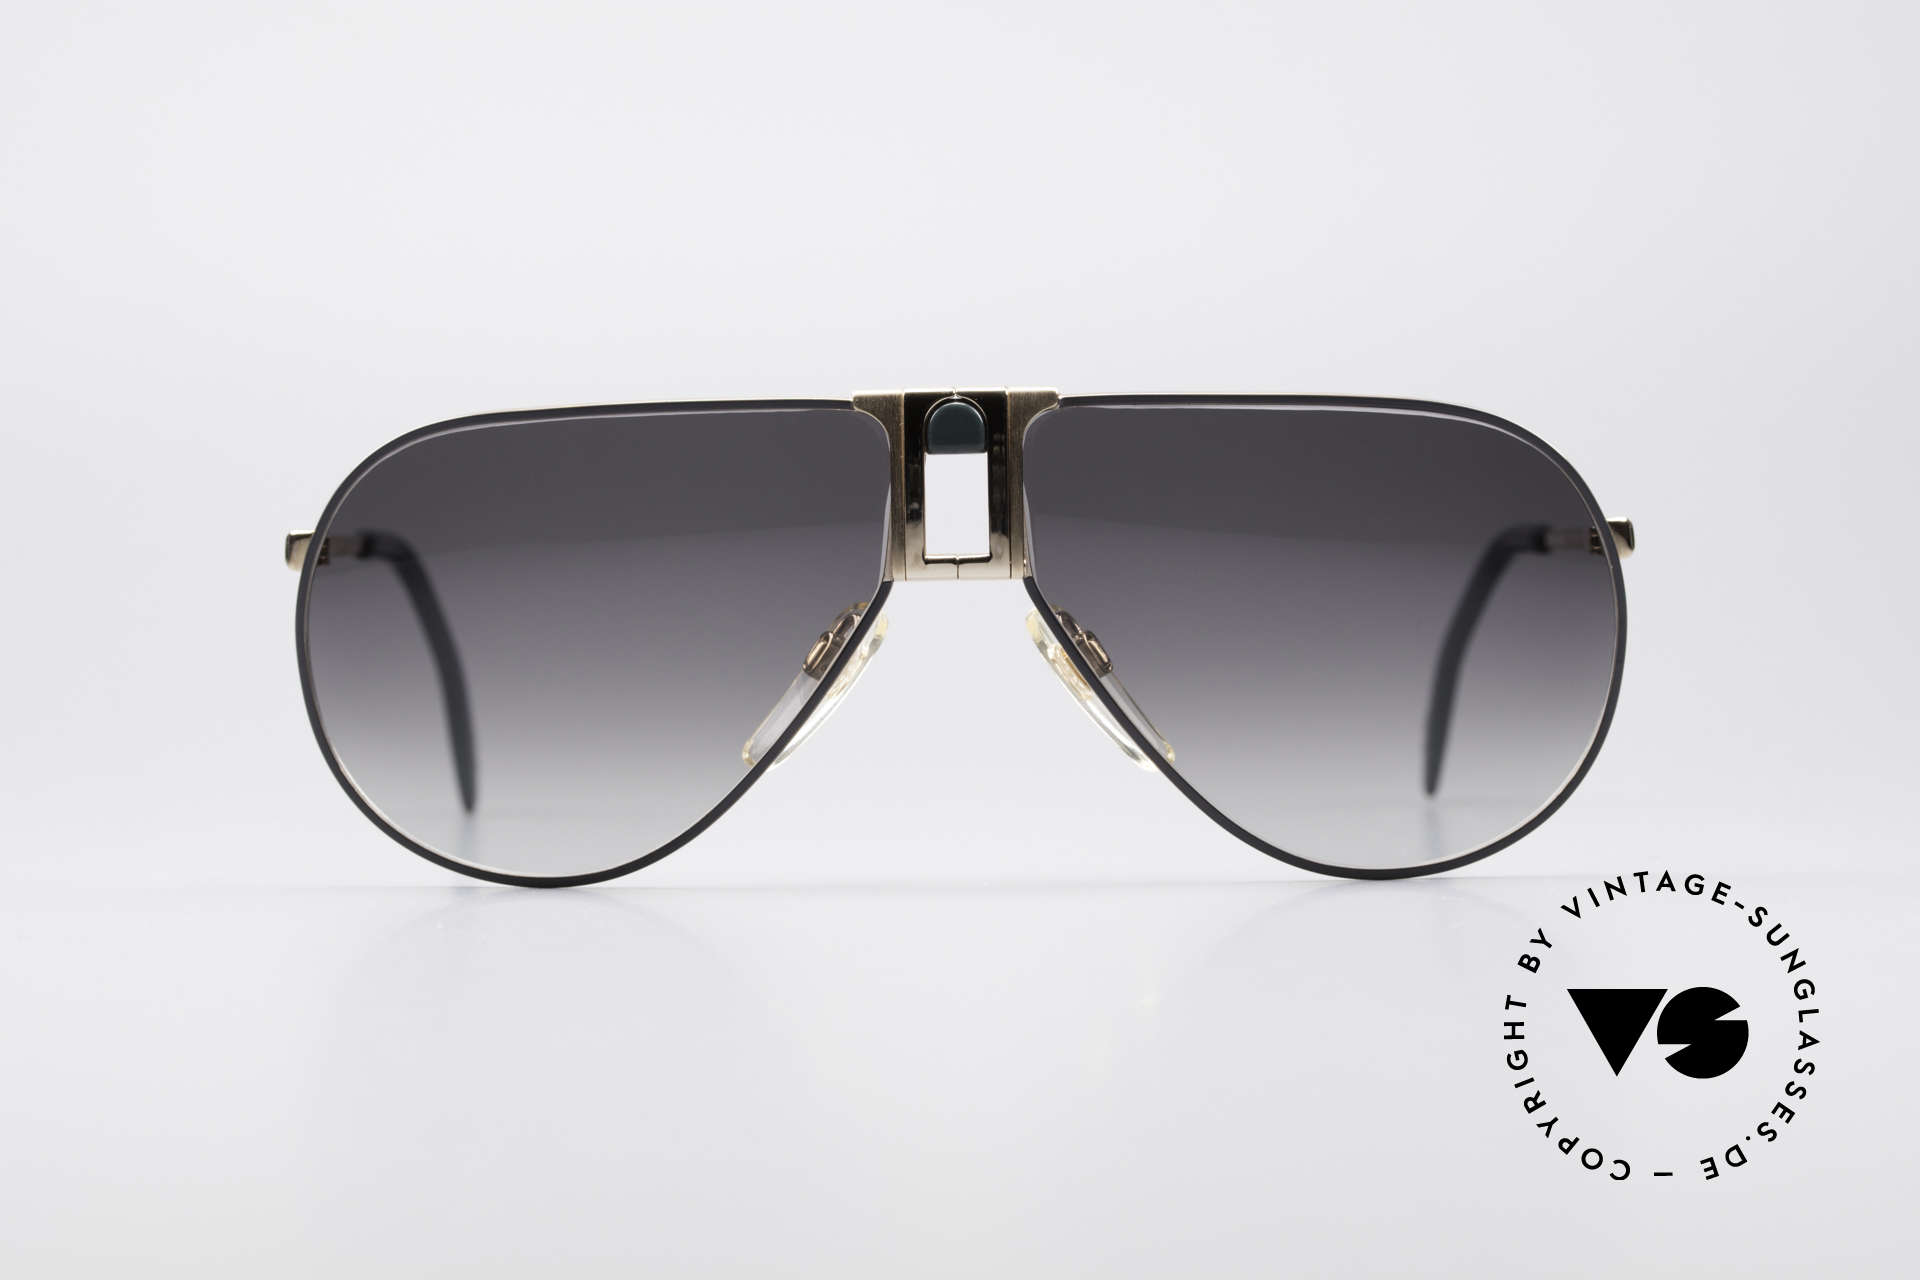 Longines 0154 1980's Aviator Sunglasses, precious frame with spring hinges (Metzler, Germany), Made for Men